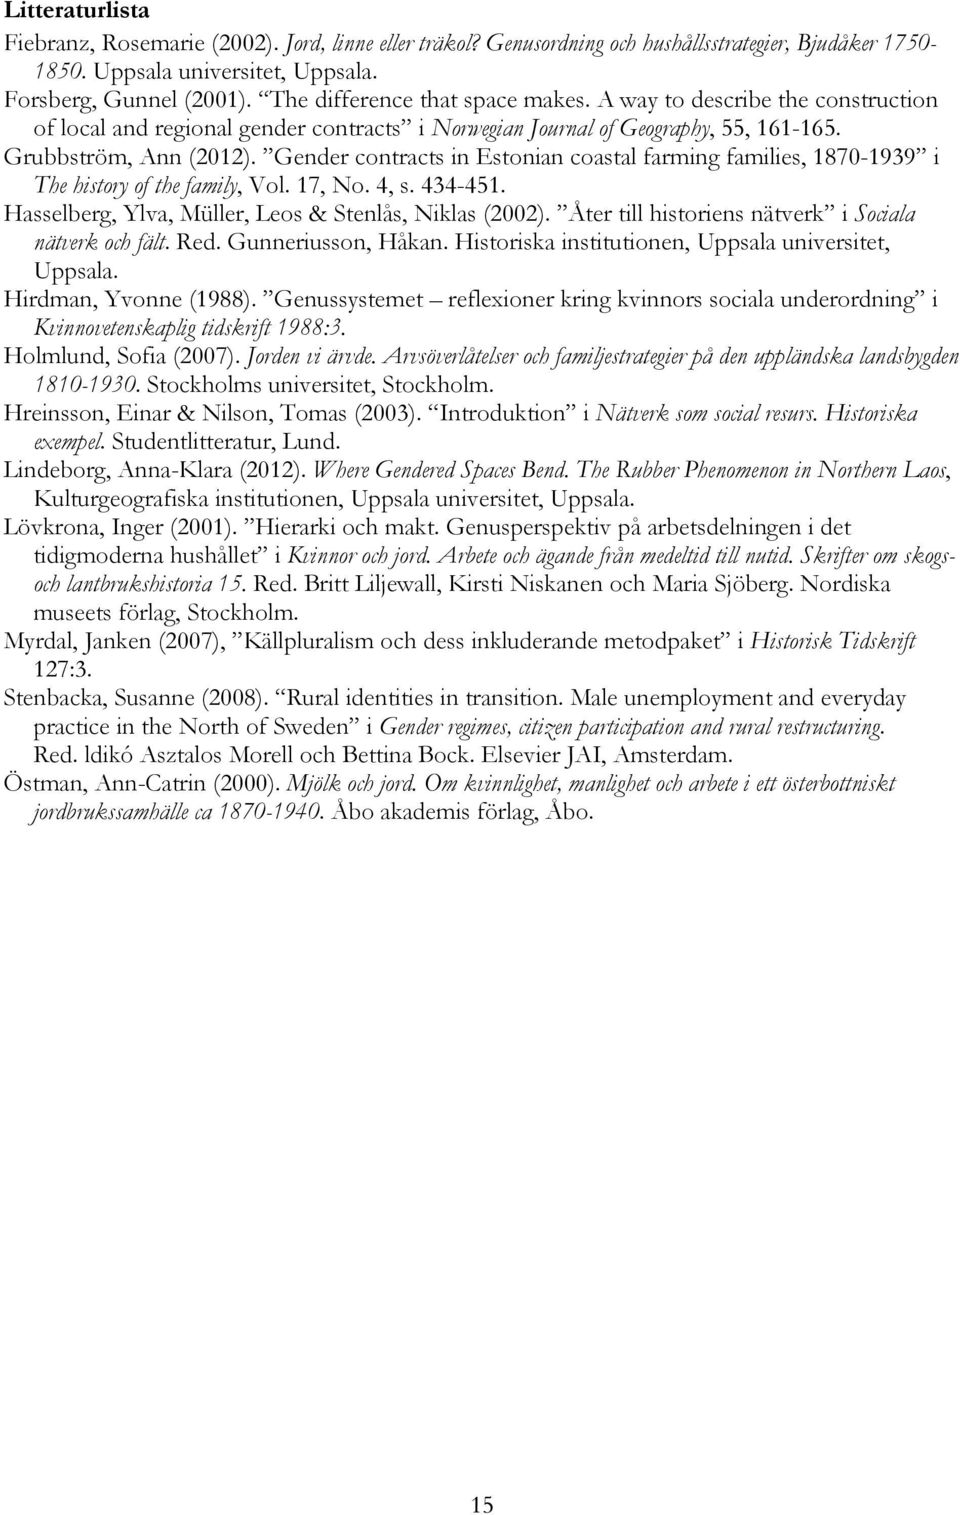 Gender contracts in Estonian coastal farming families, 1870-1939 i The history of the family, Vol. 17, No. 4, s. 434-451. Hasselberg, Ylva, Müller, Leos & Stenlås, Niklas (2002).